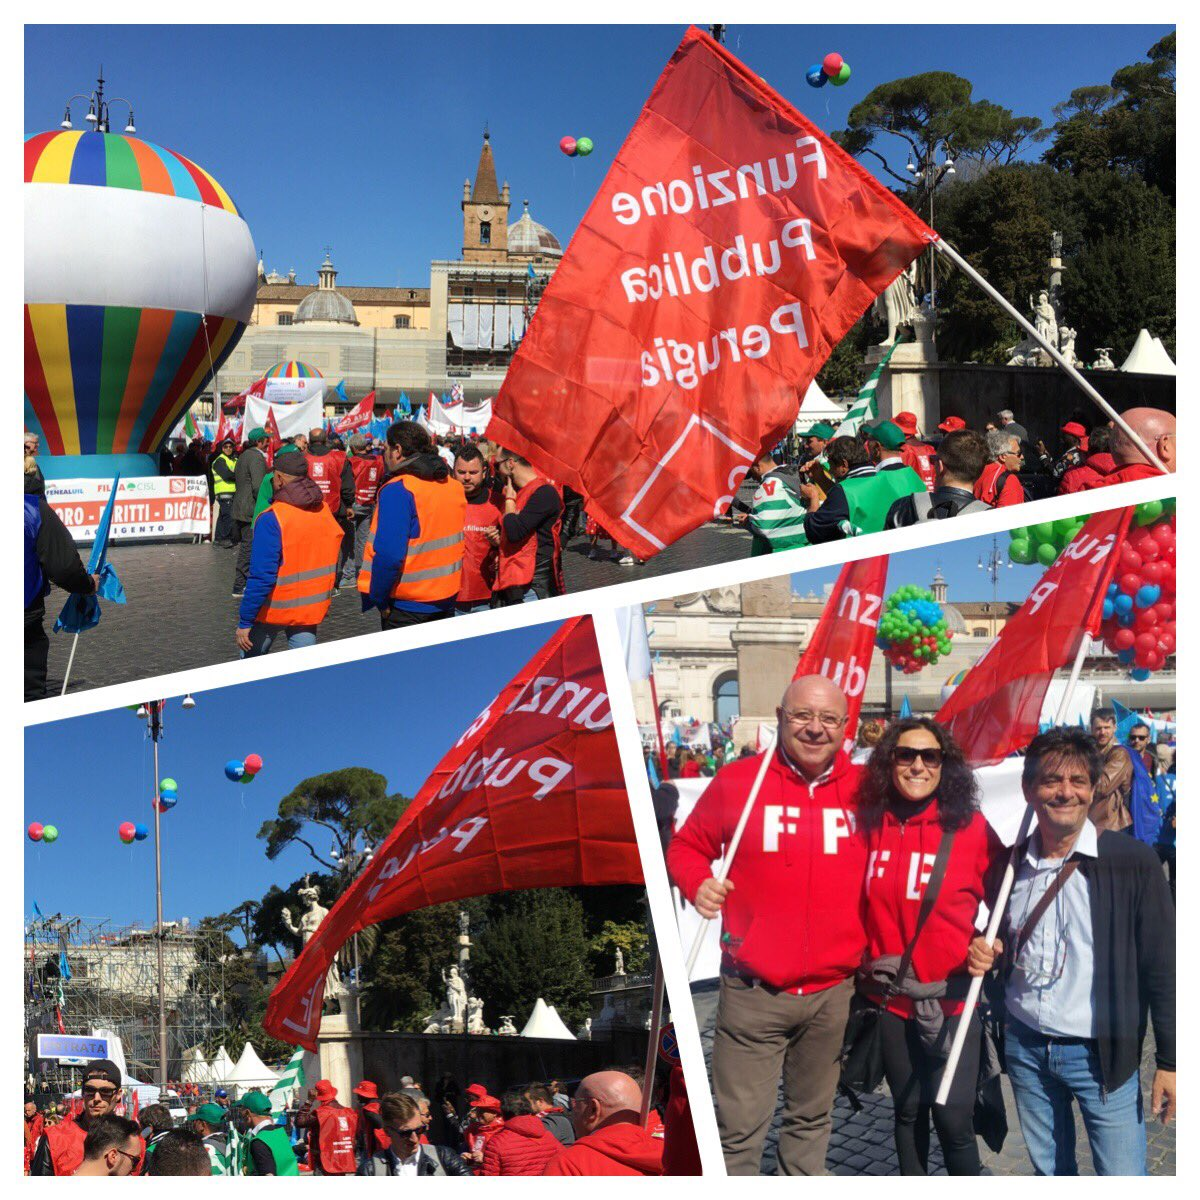 Fp Cgil Nazionale's photo on #atestaalta